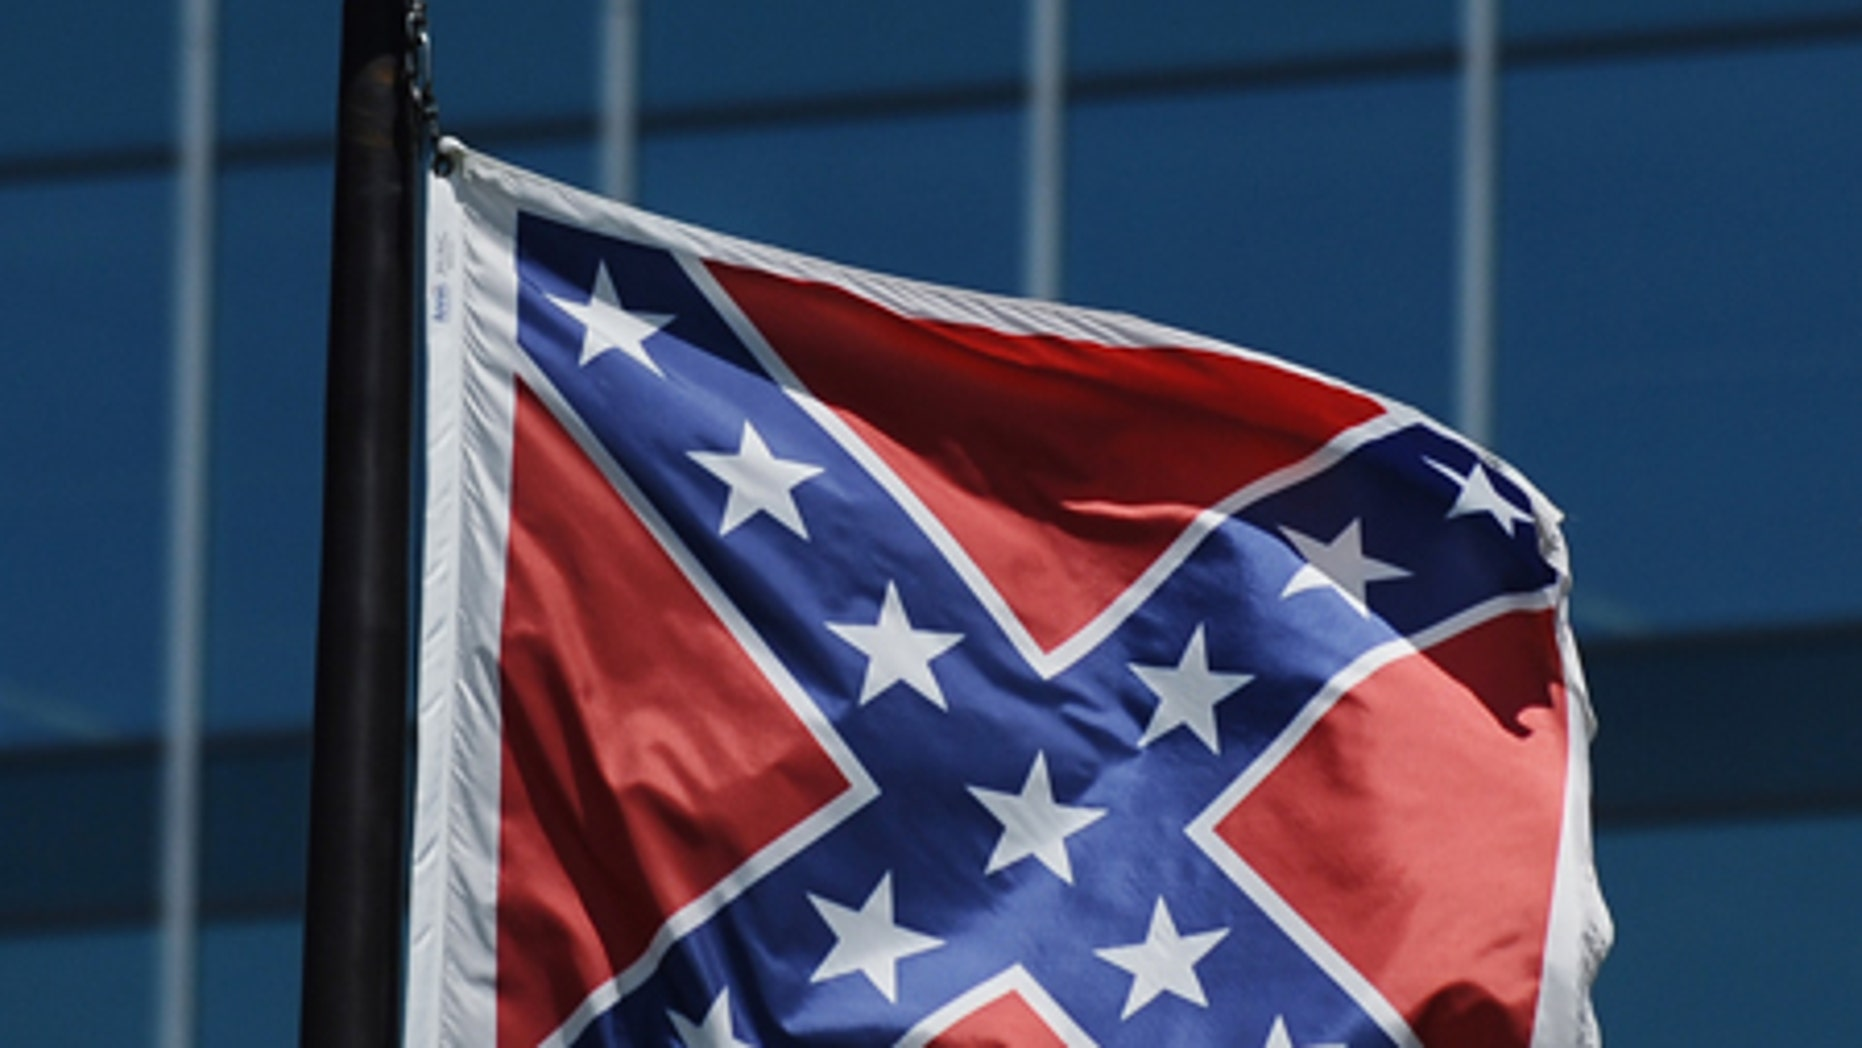 The Confederate flag flies near the South Carolina Statehouse, Friday, June 19, 2015, in Columbia, S.C. Tensions over the Confederate flag flying in the shadow of South Carolina's Capitol rose this week in the wake of the killings of nine people at a black church in Charleston, S.C. (AP Photo/Rainier Ehrhardt)